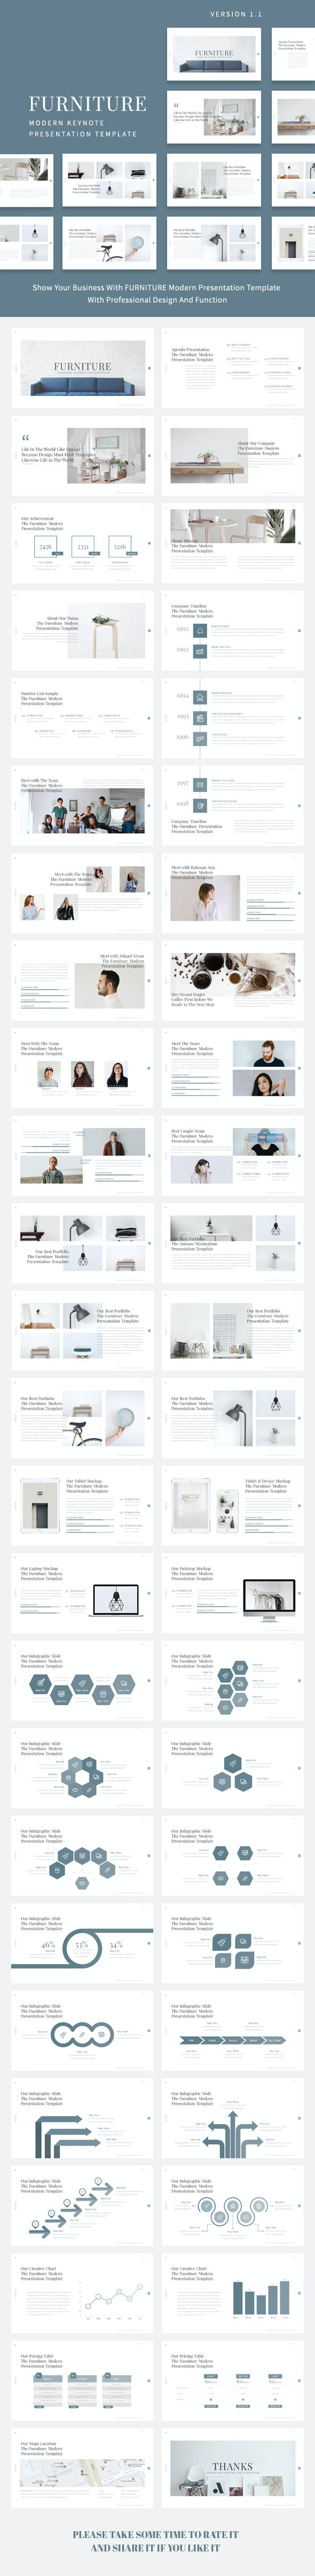 Furniture - Modern Keynote Presentation Template - Business Keynote Templates